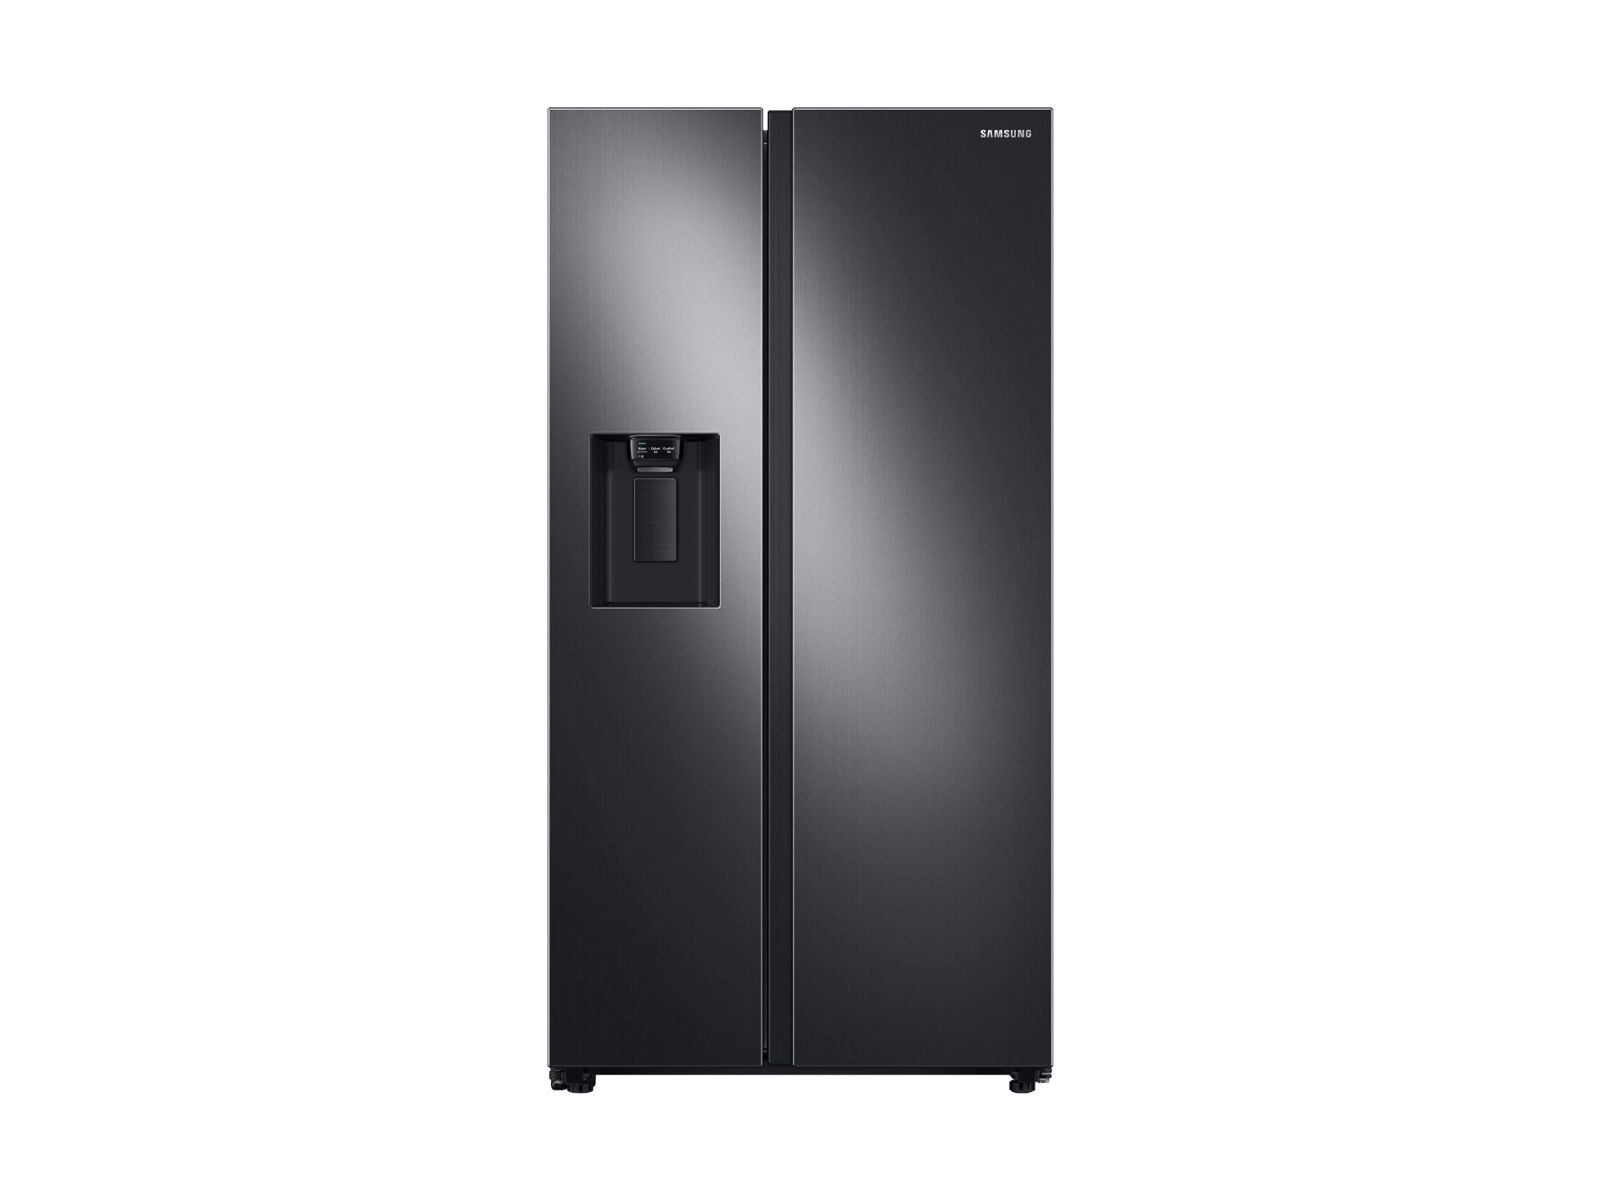 Side By Side Refrigerator With Ice Maker Rs22t5201sg Samsung Us In 2020 Stainless Steel Fridge Samsung Fridge Glass Shower Enclosures